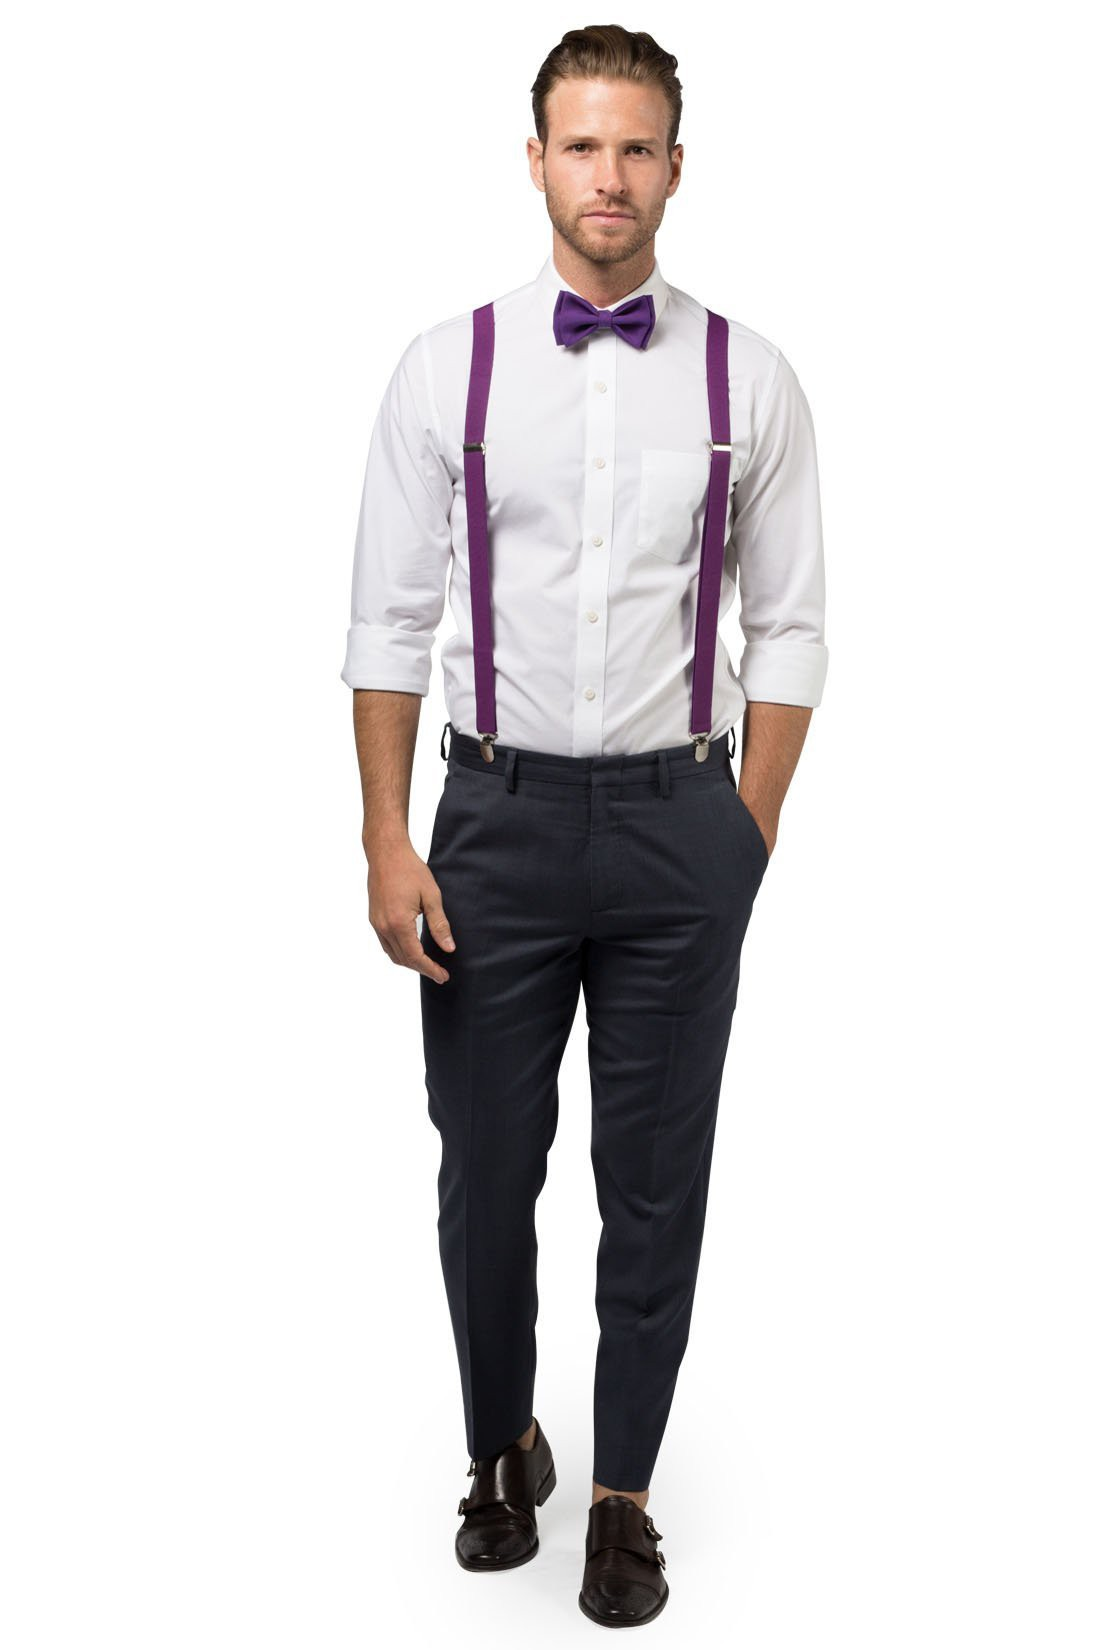 Clip on Bow-Tie Matching Set for Adults Men Women Lavender Purple Suspender